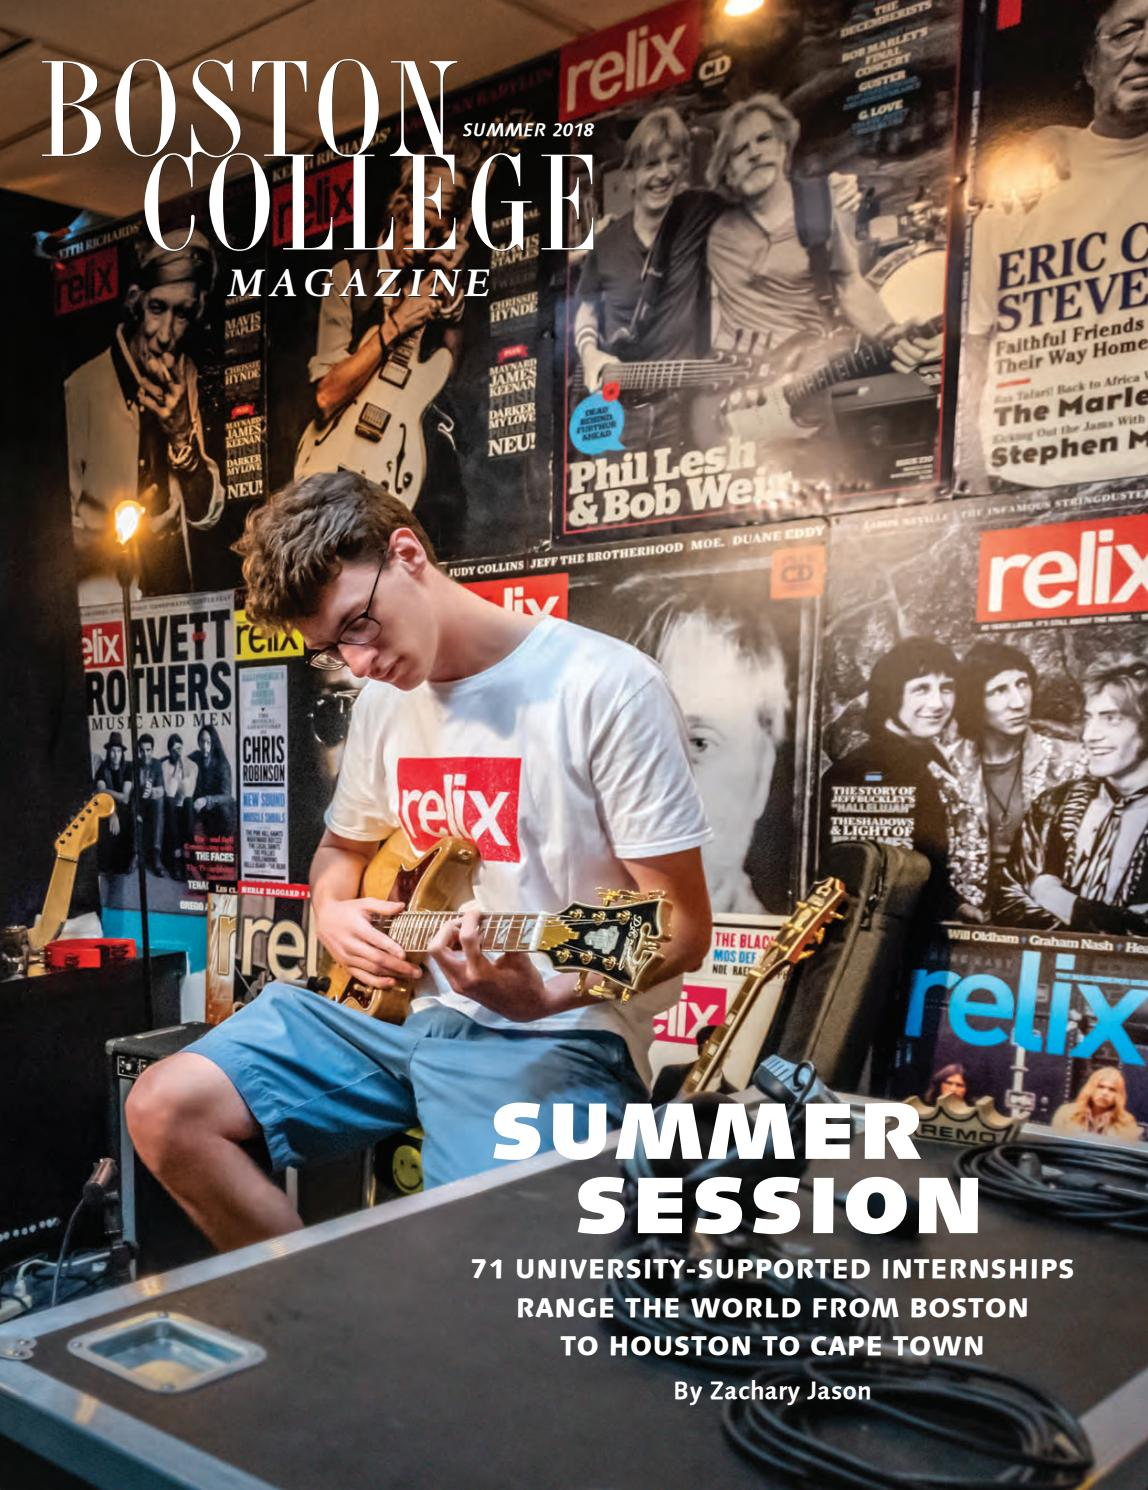 bebdc67277388a Boston College Magazine